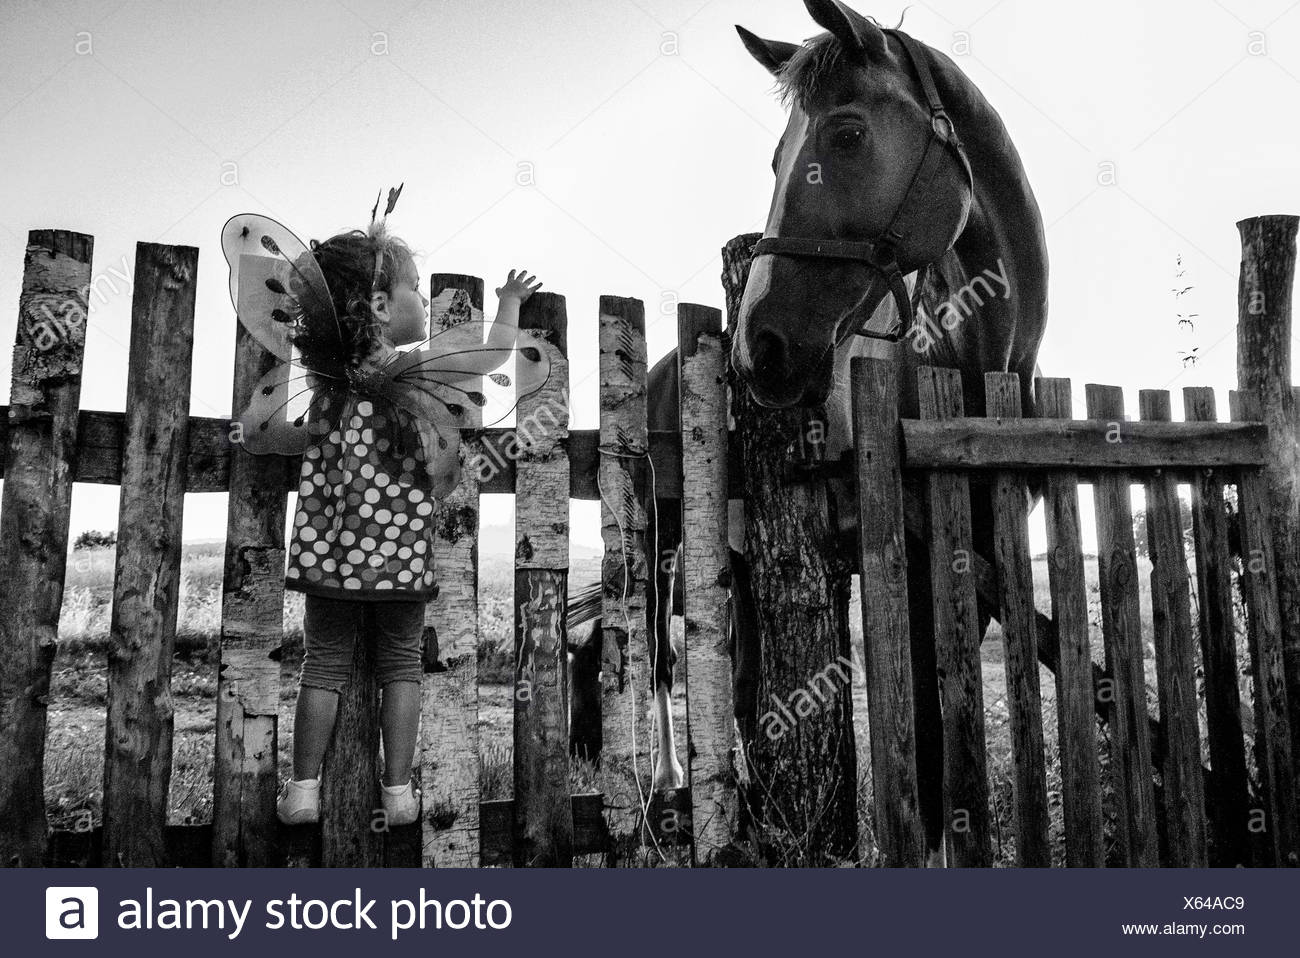 Girl dressed as fairy standing on a fence looking at a horse Stock Photo